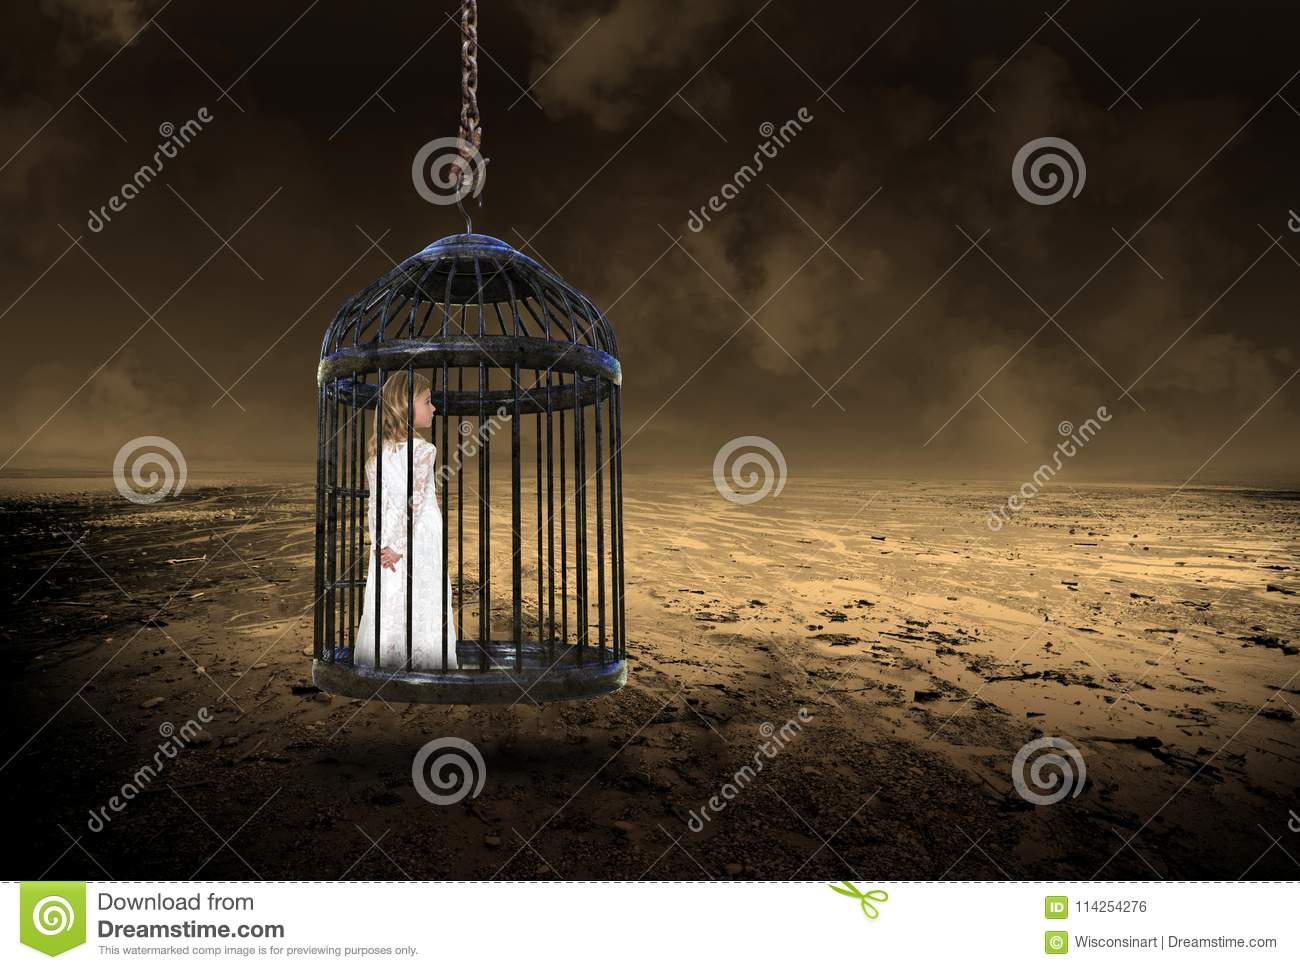 Young Girl, Cage, Love, Hope, Peace